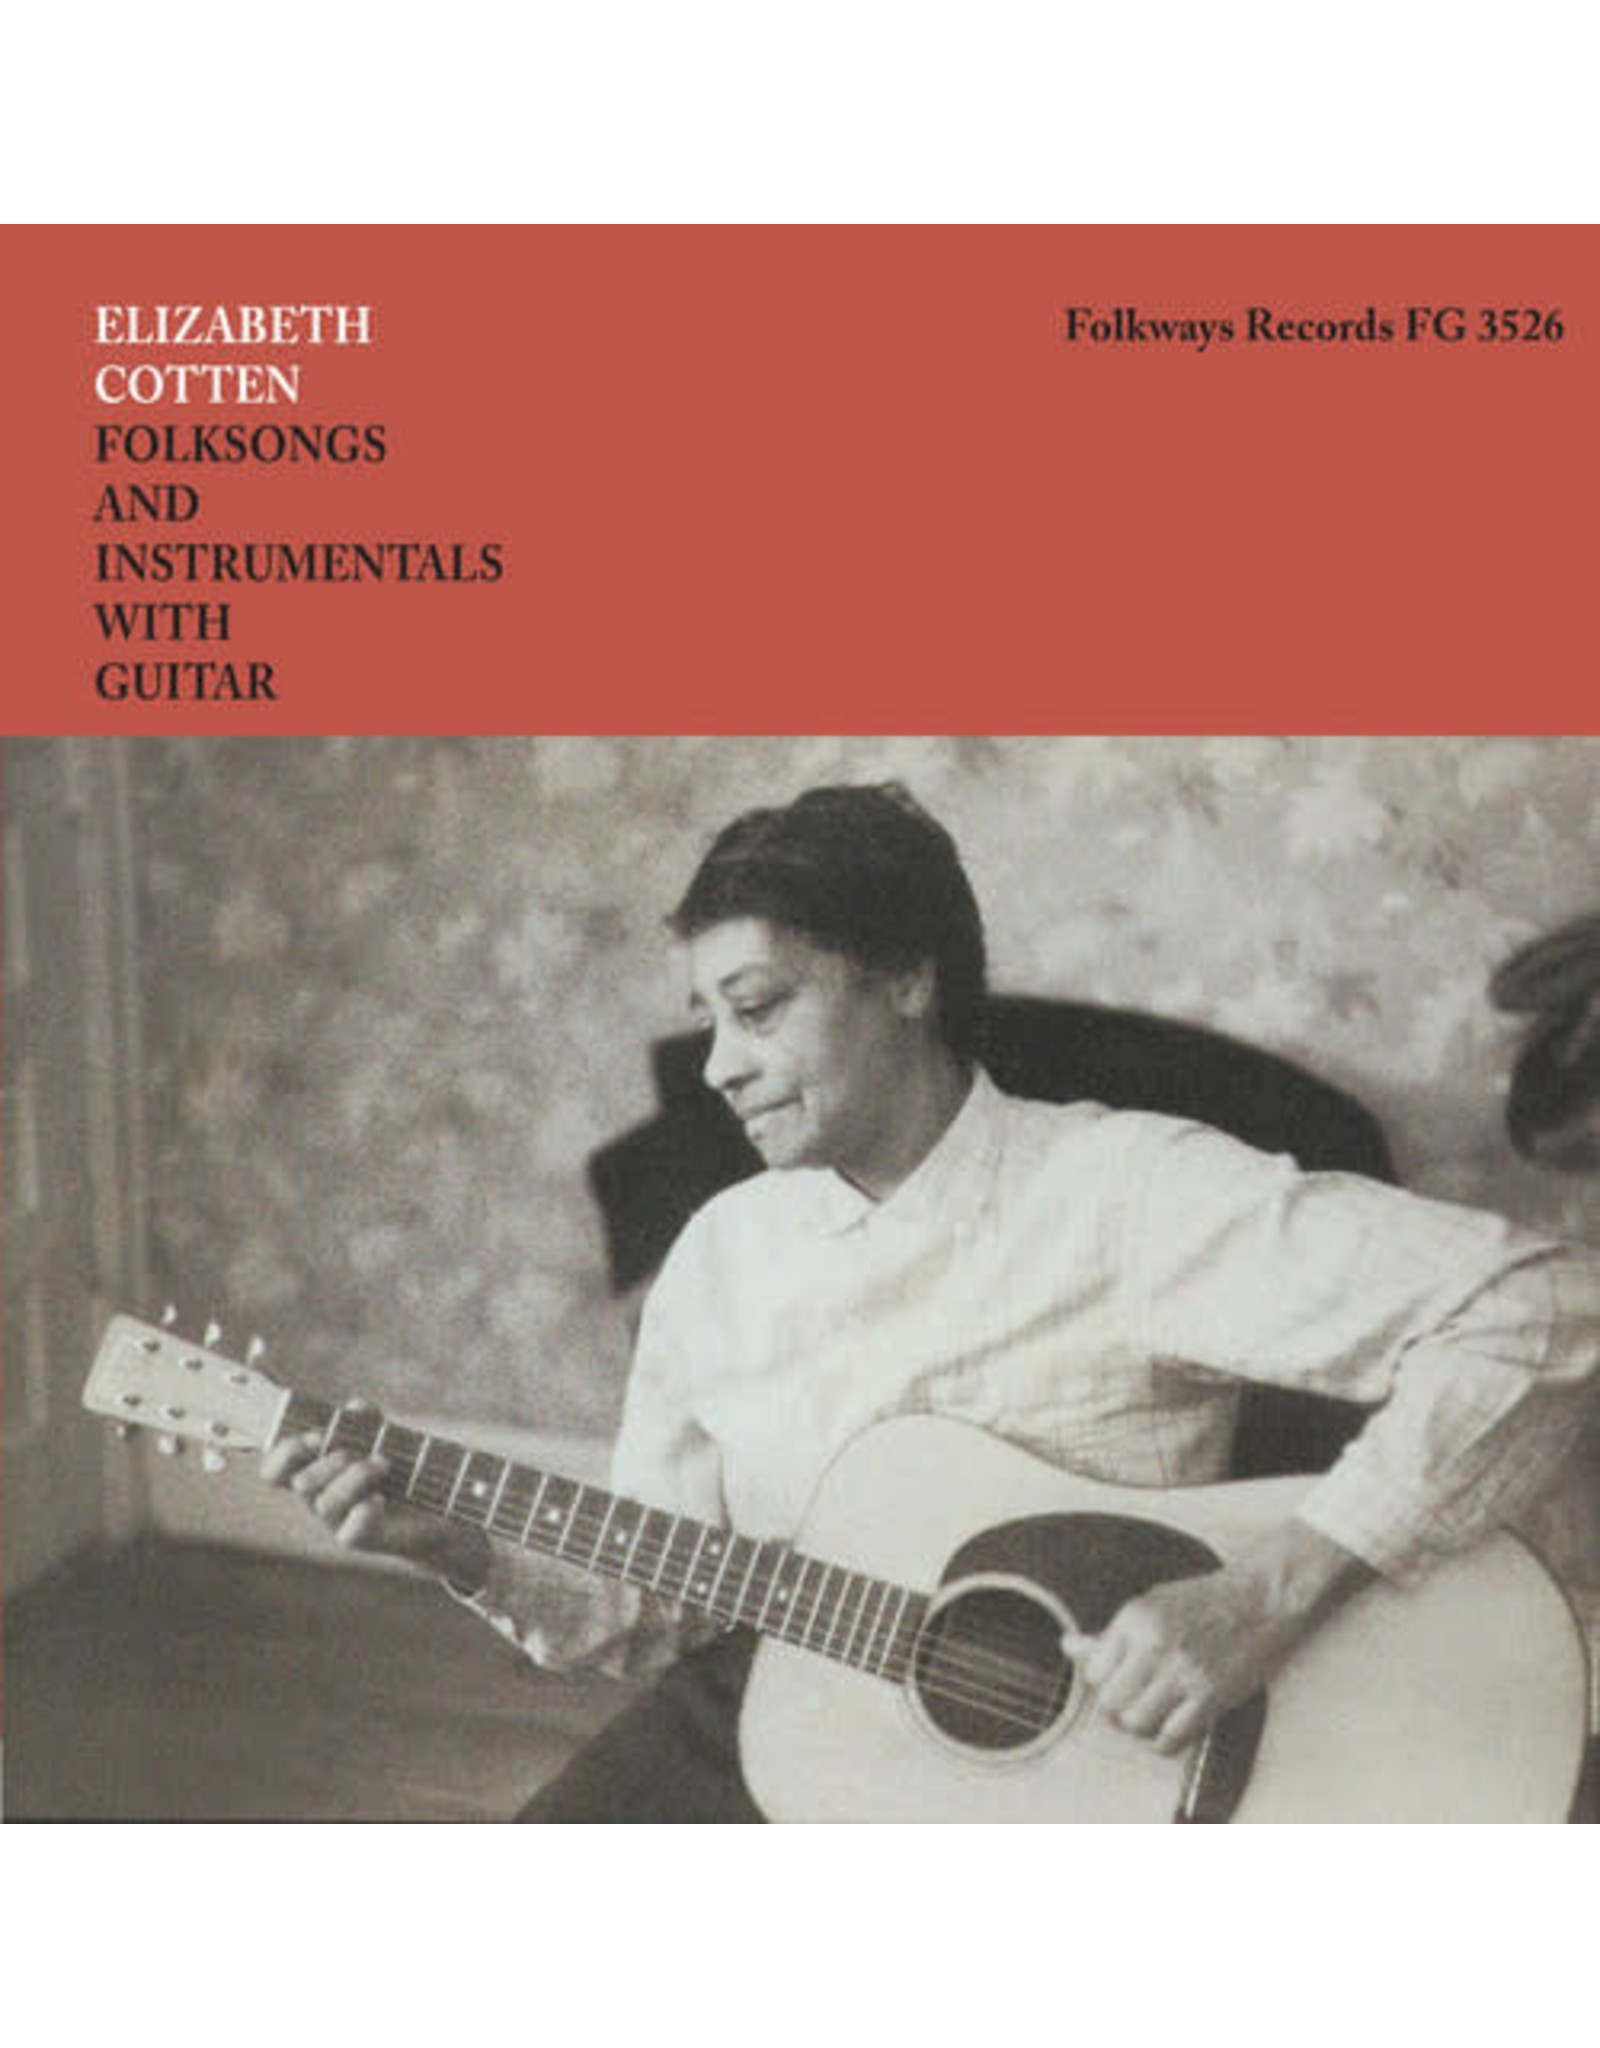 New Vinyl Elizabeth Cotten - Folksongs And Instrumentals With Guitar LP